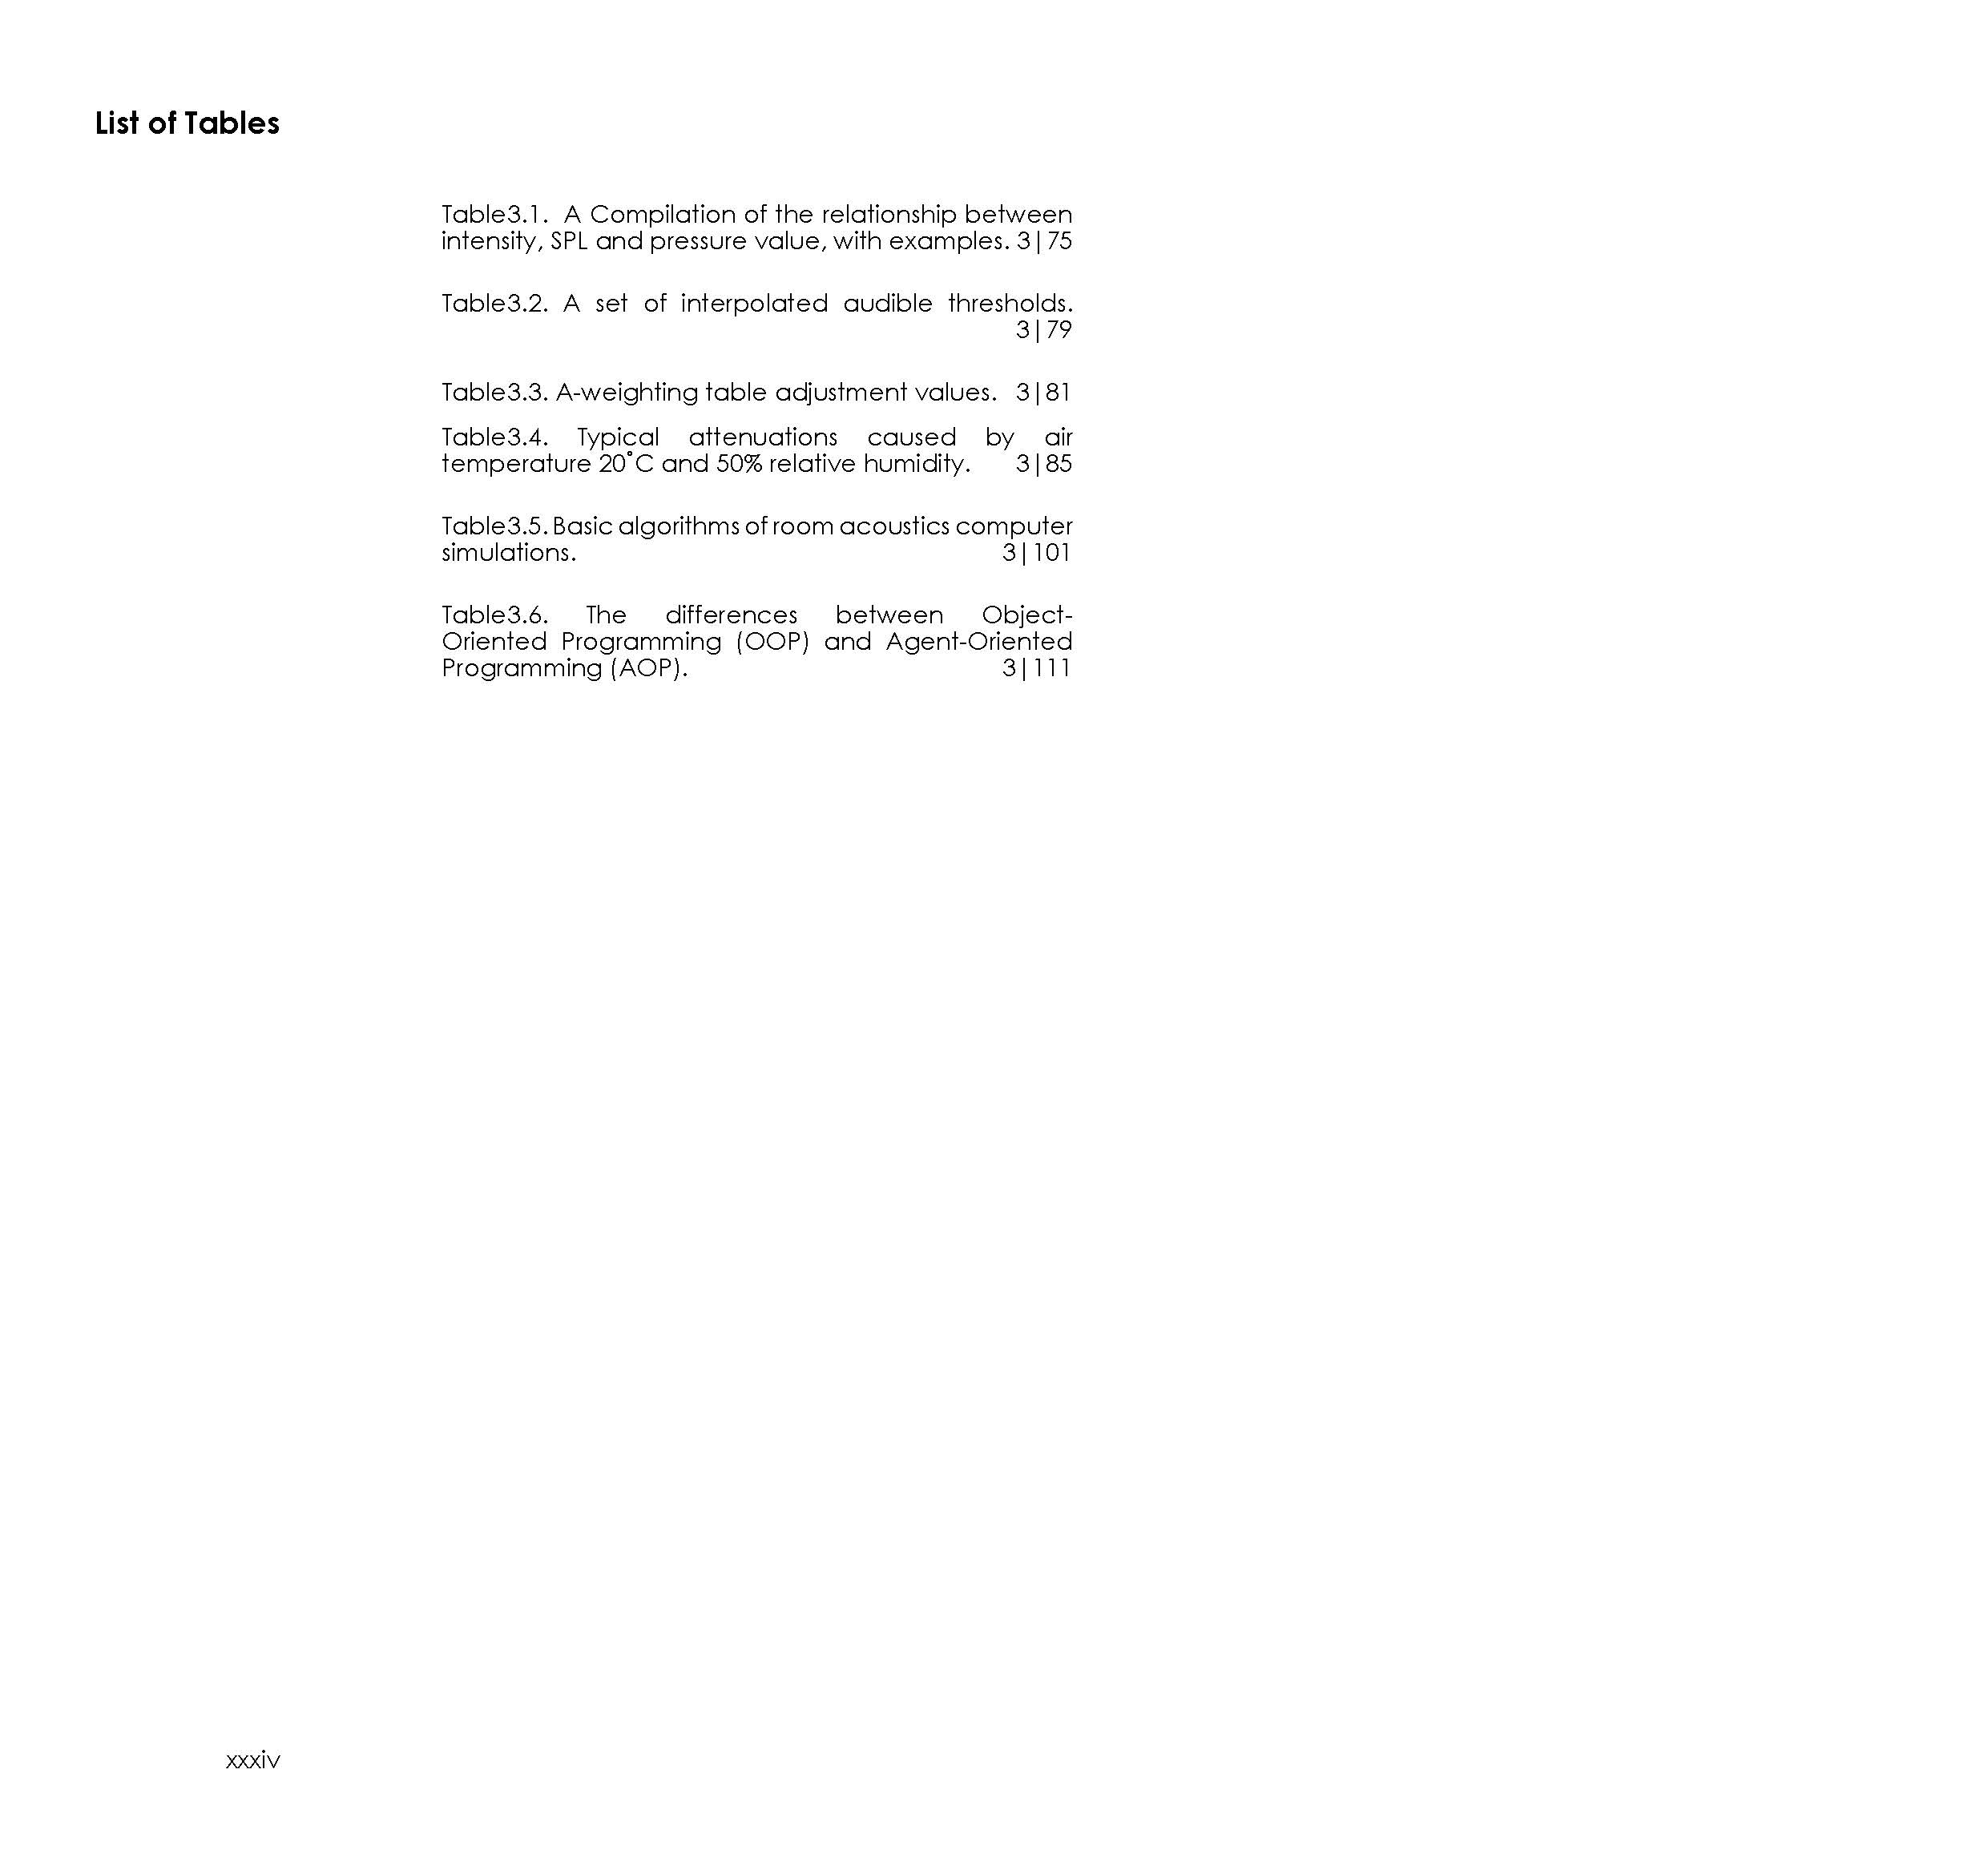 16.03.03_Thesis_01_Interactive_Page_036.jpg